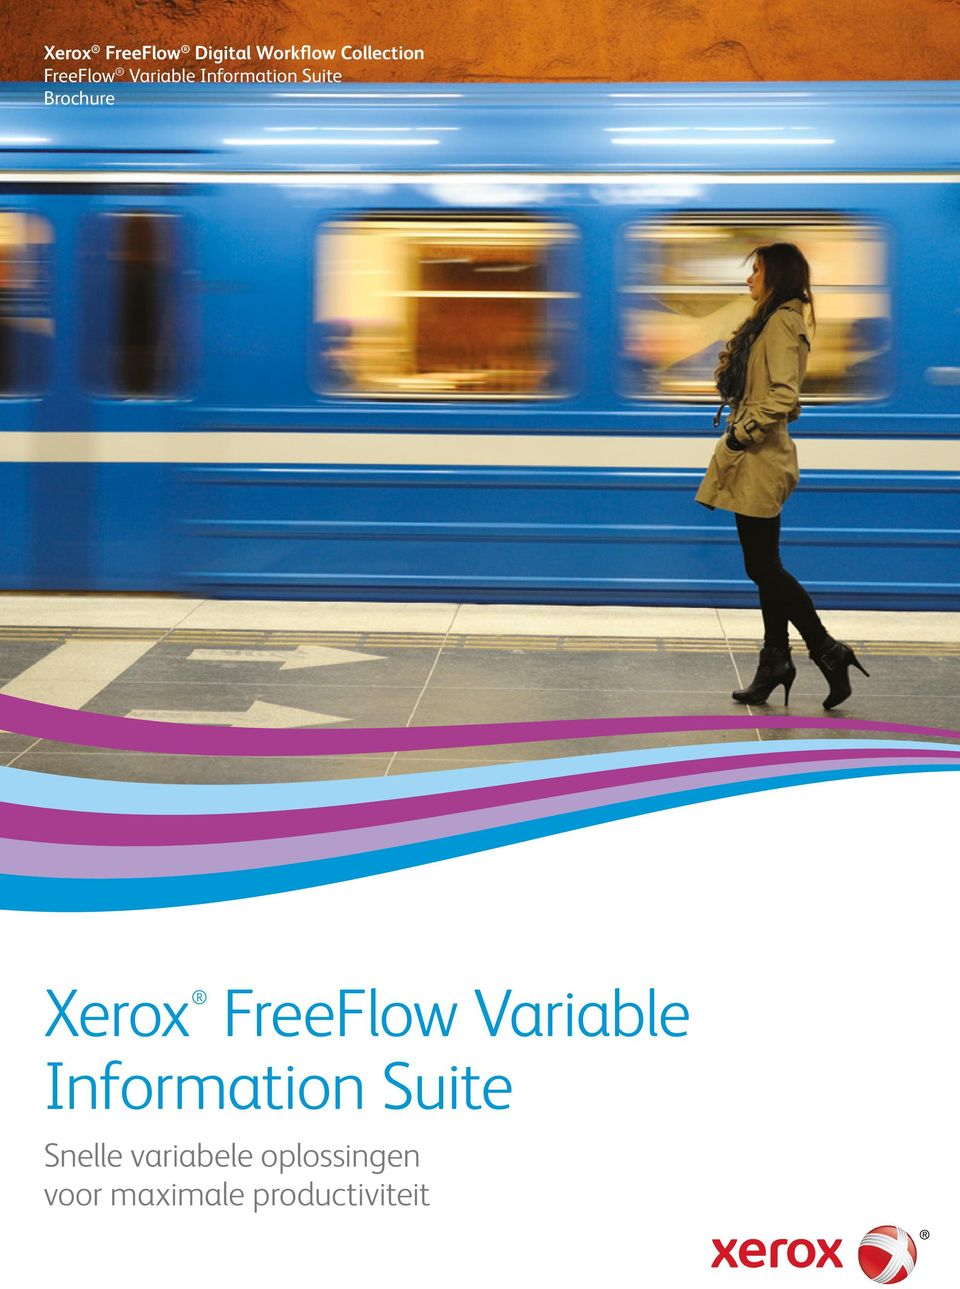 Xerox FreeFlow Variable Information Suite